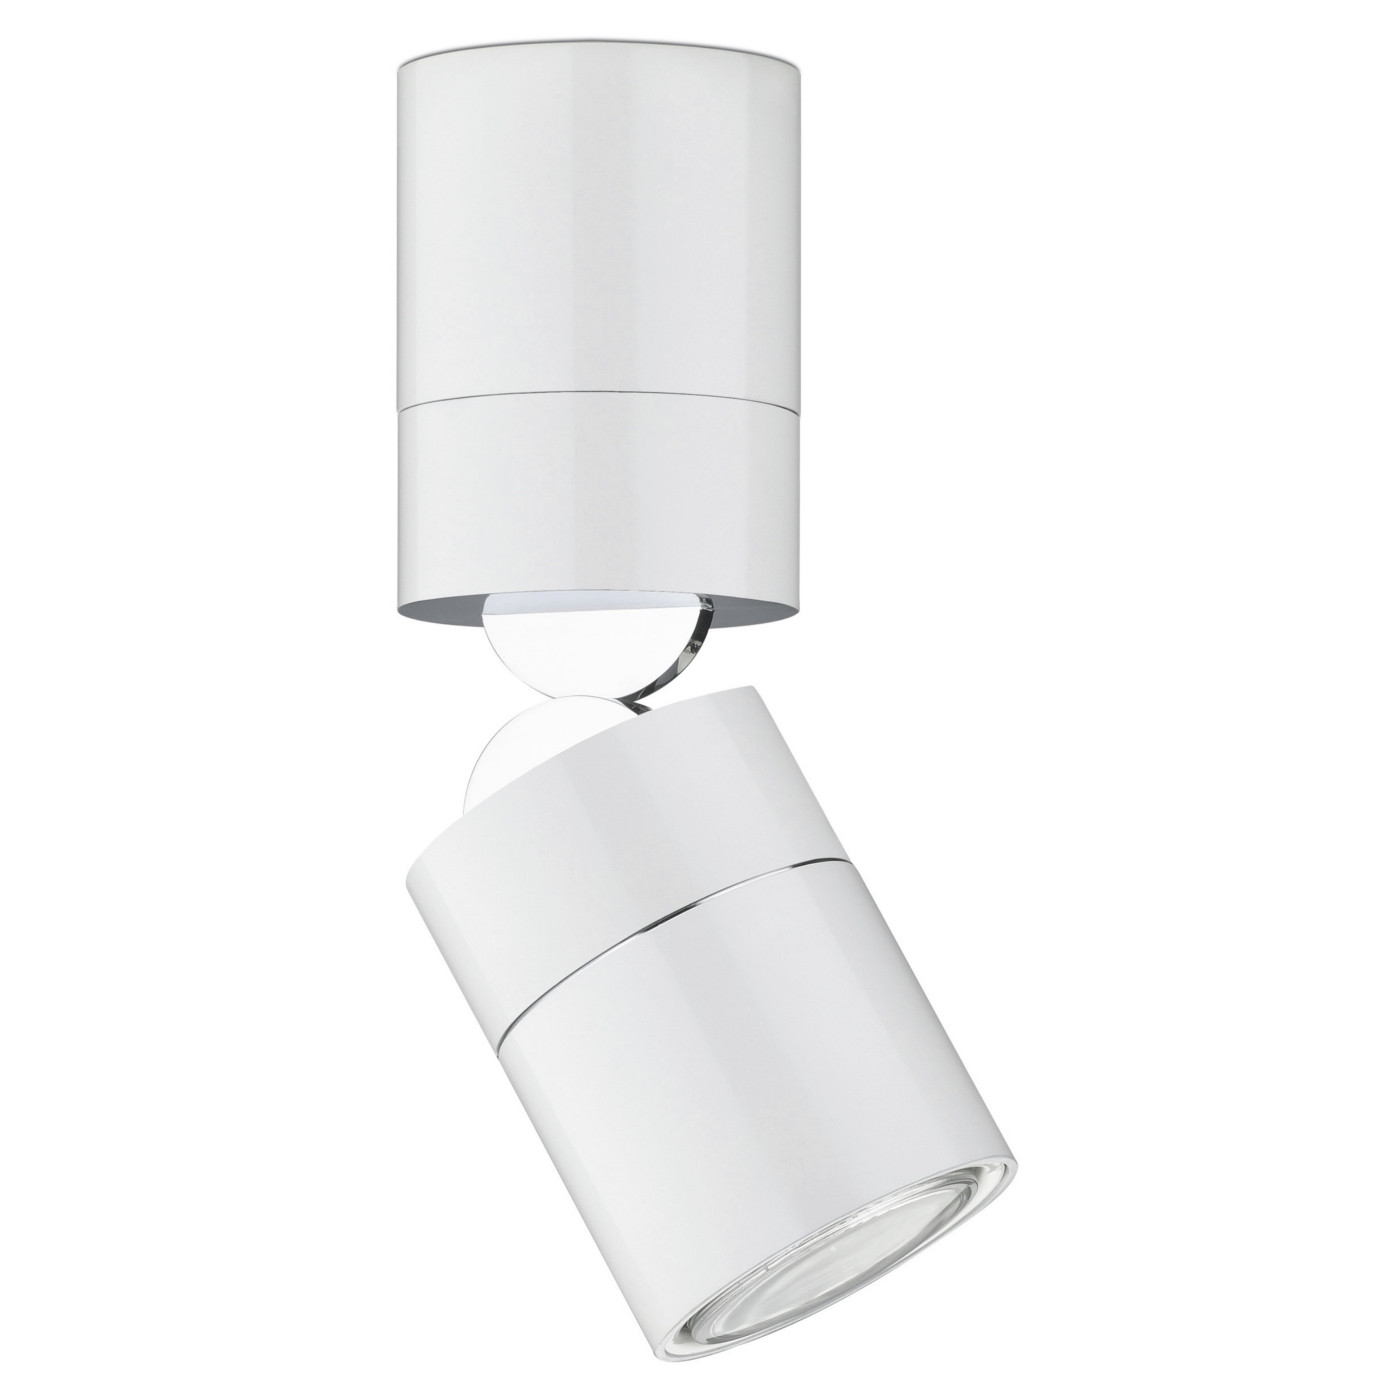 Vibia Stage 8980 Ceiling Light